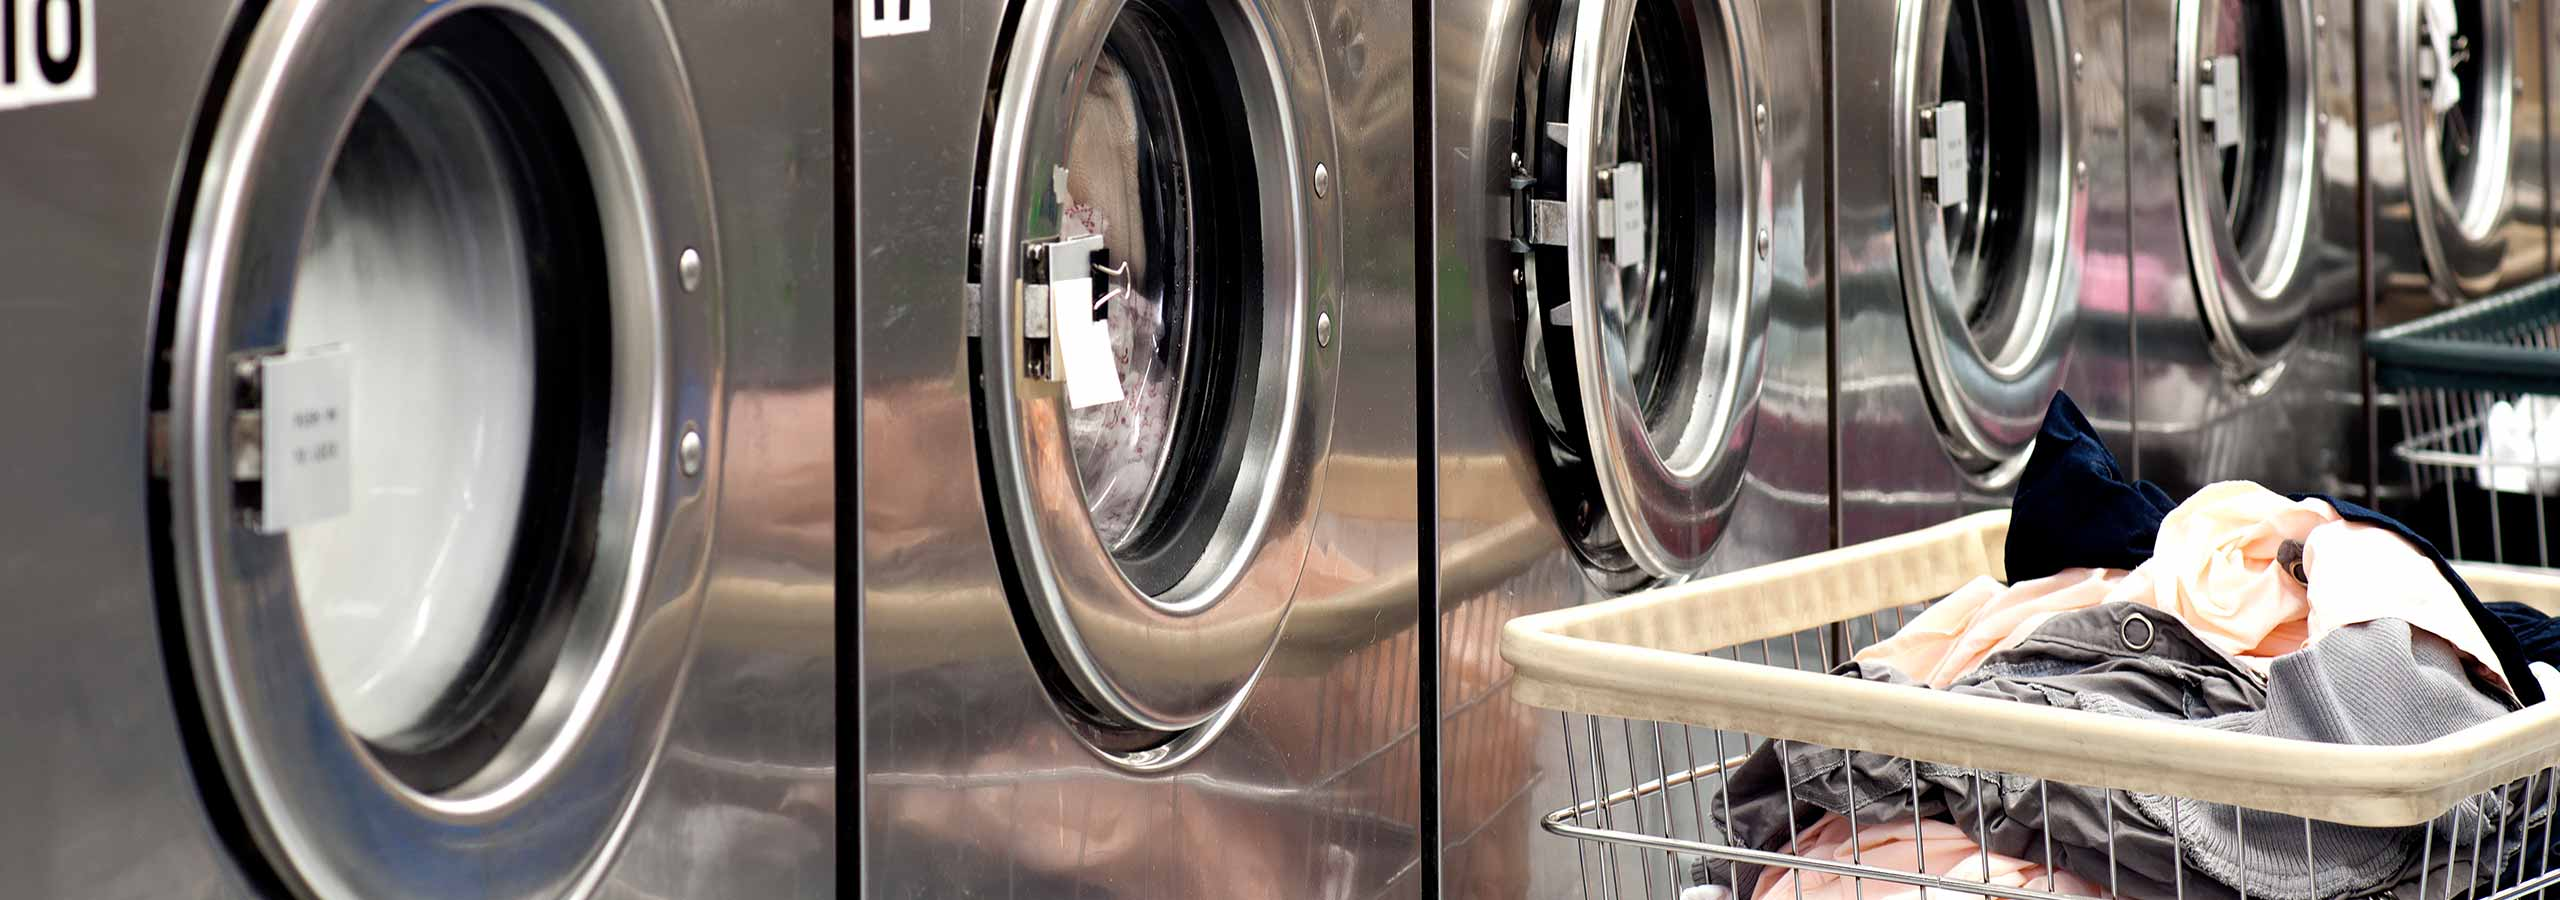 Domestic Laundry Services